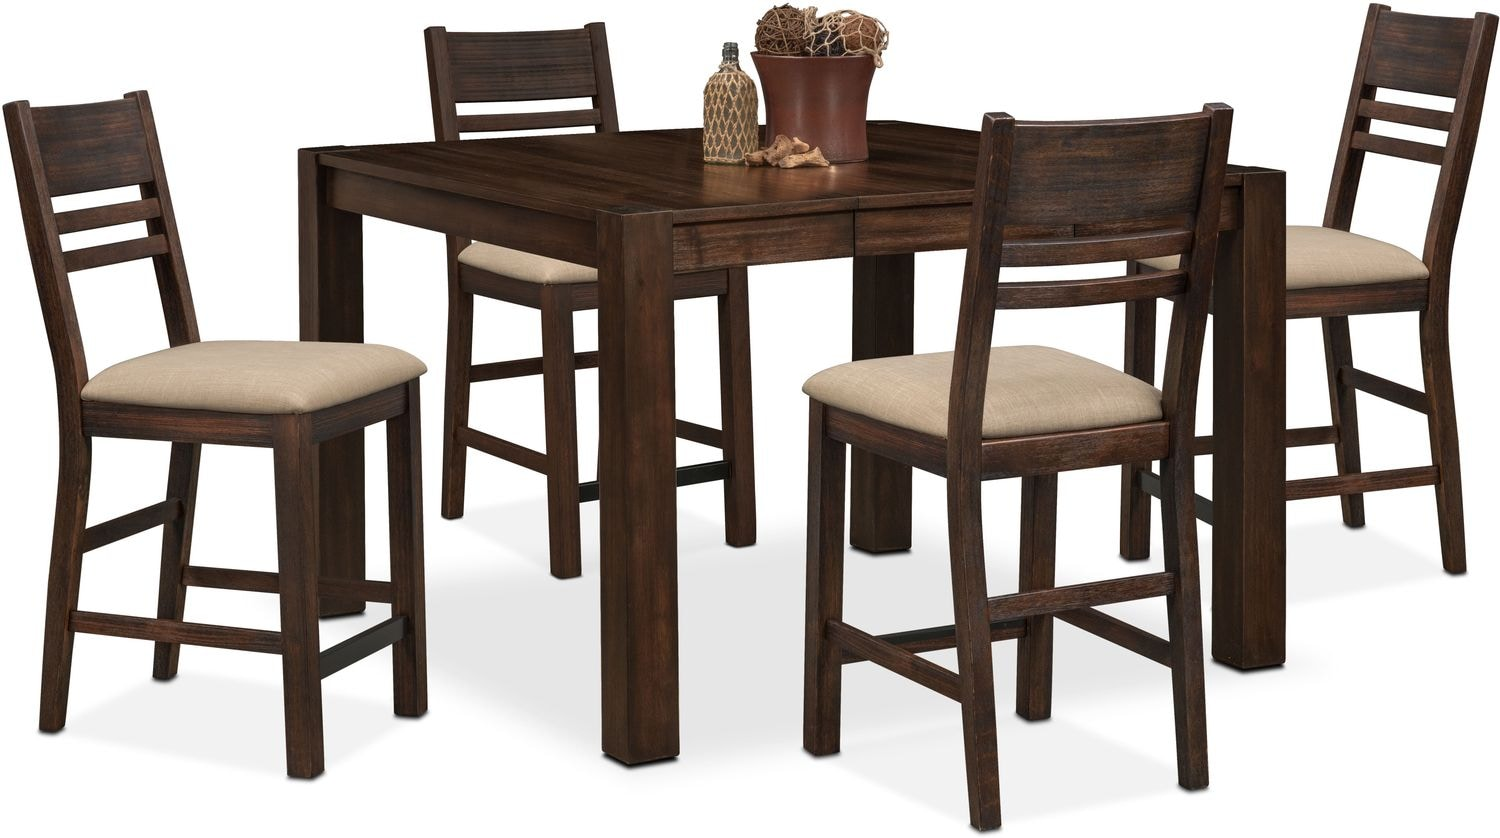 Make A Side Table Taller: Tribeca Counter-Height Table And 4 Side Chairs